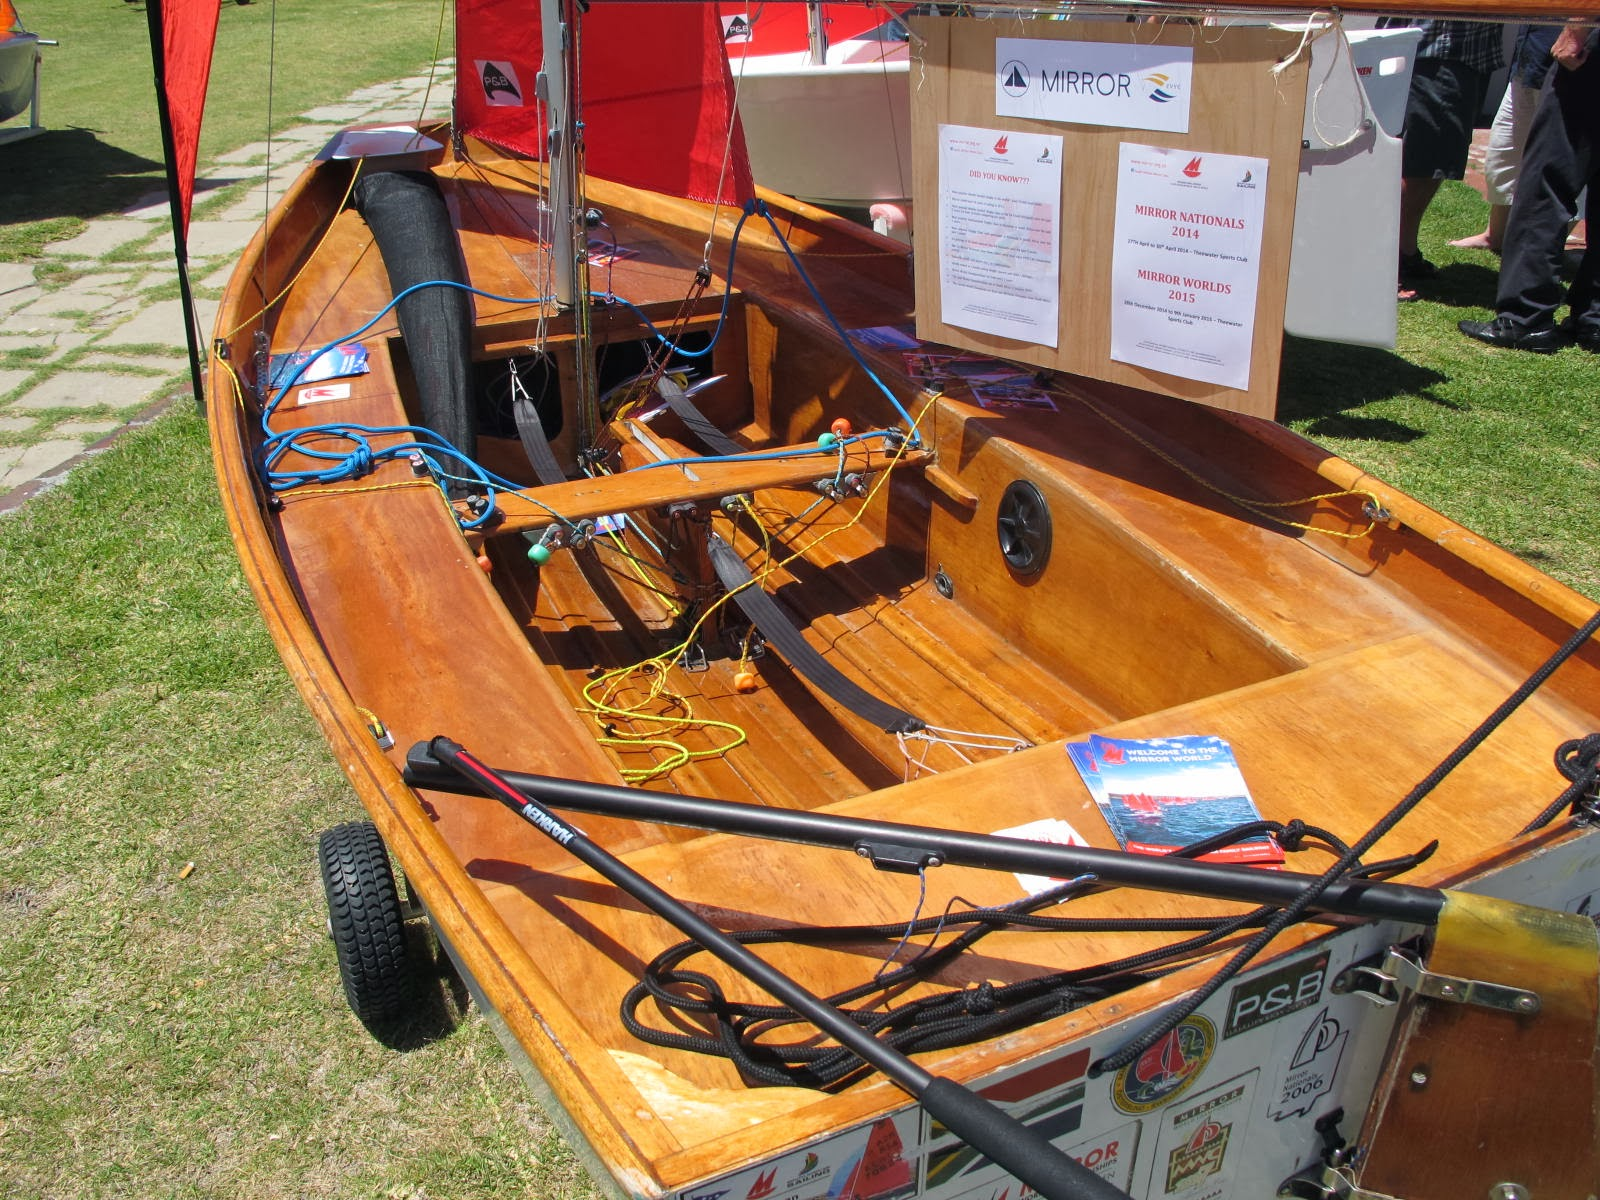 CKD Boats - Roy Mc Bride: Mirror Dinghy kit supplier in Southern Africa